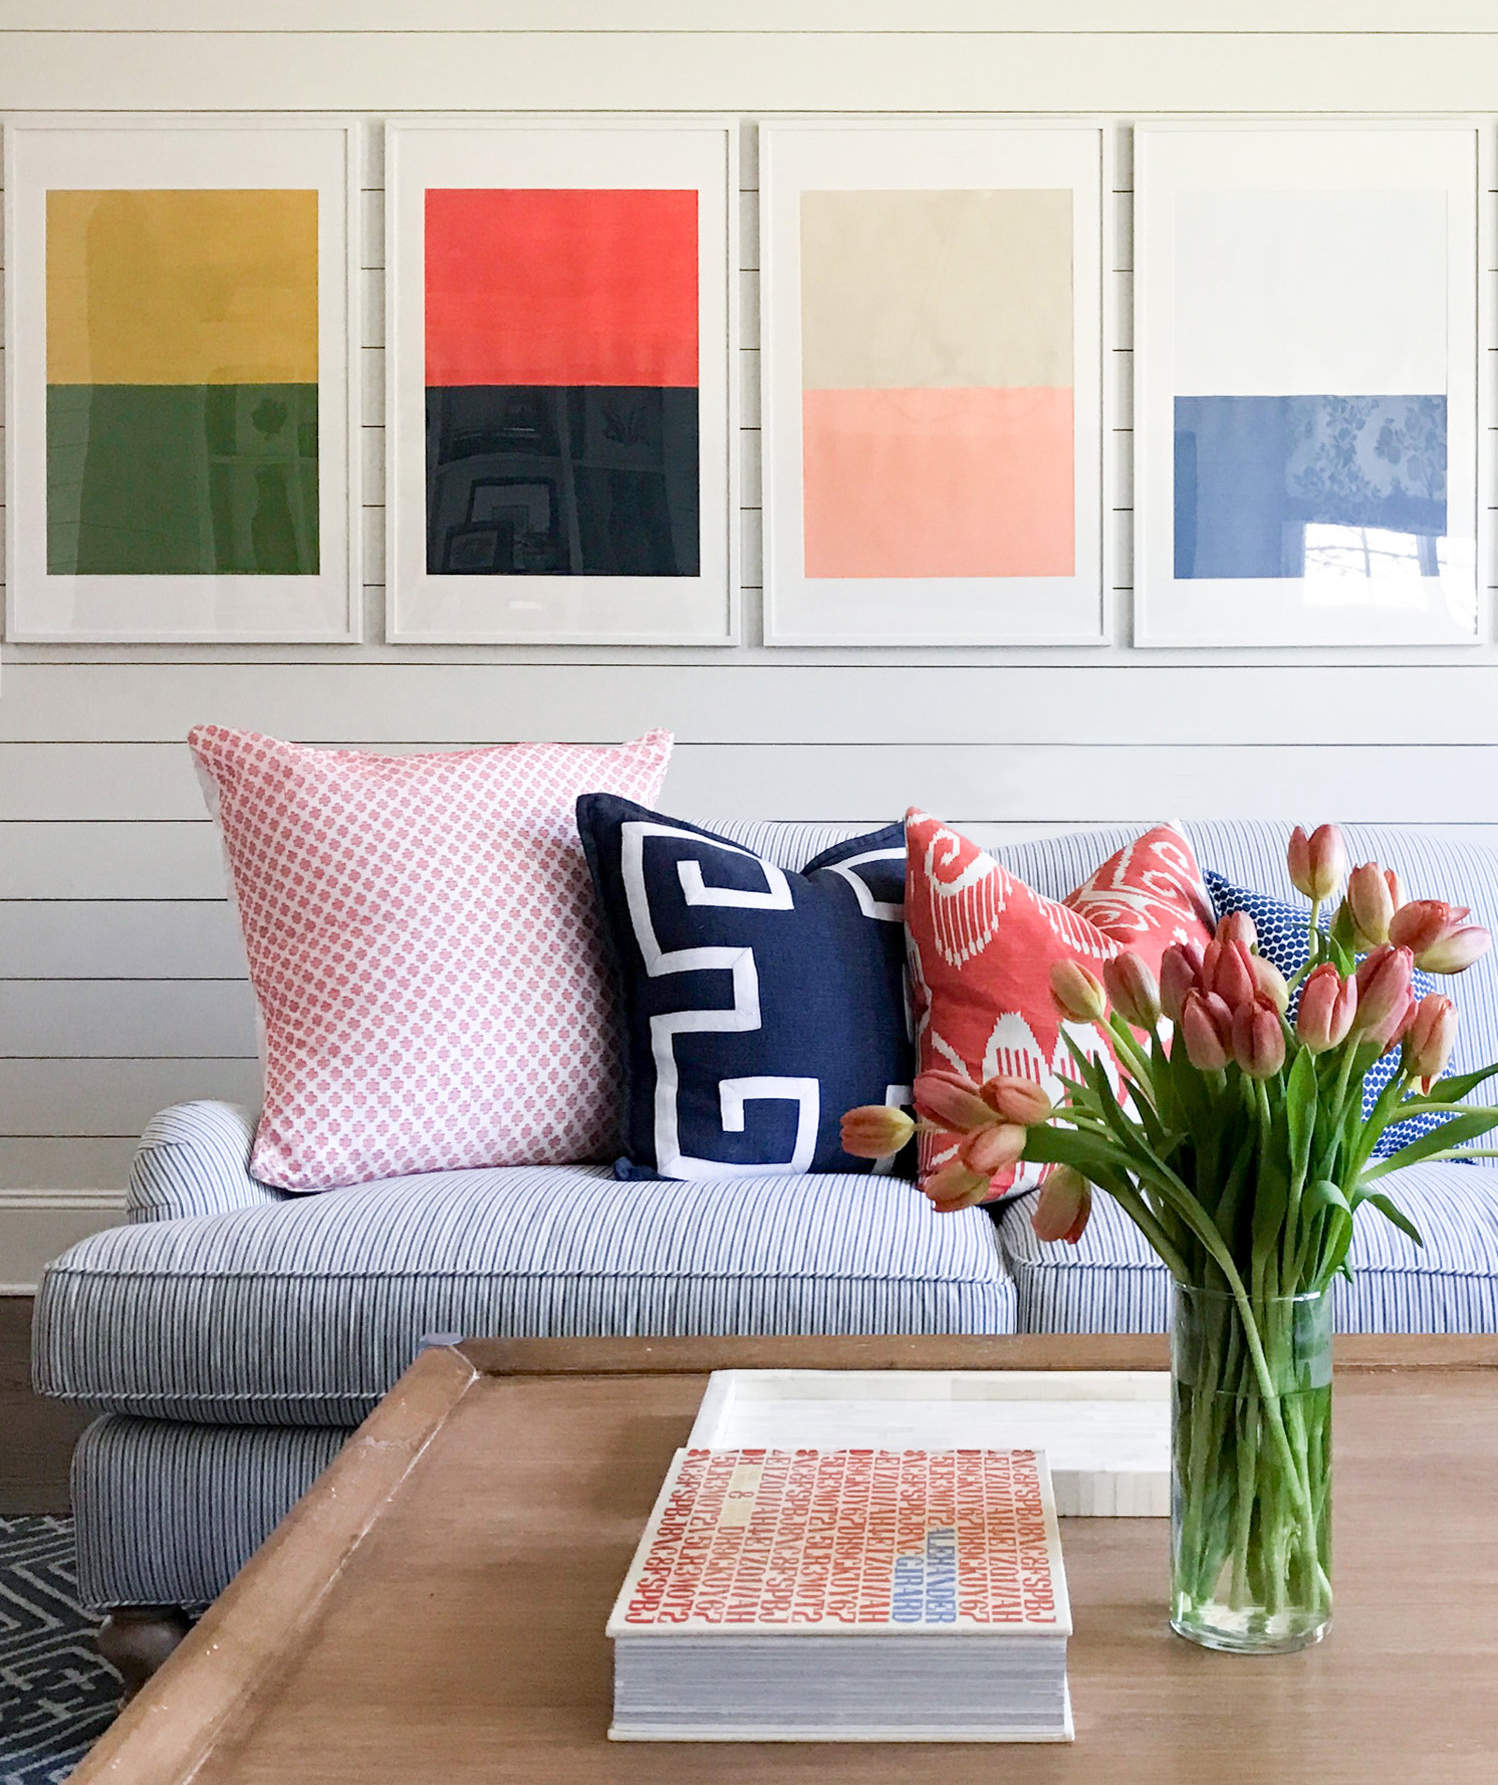 5 Things Decorators Never Spend Money On(and 2 Things They Splurge On)